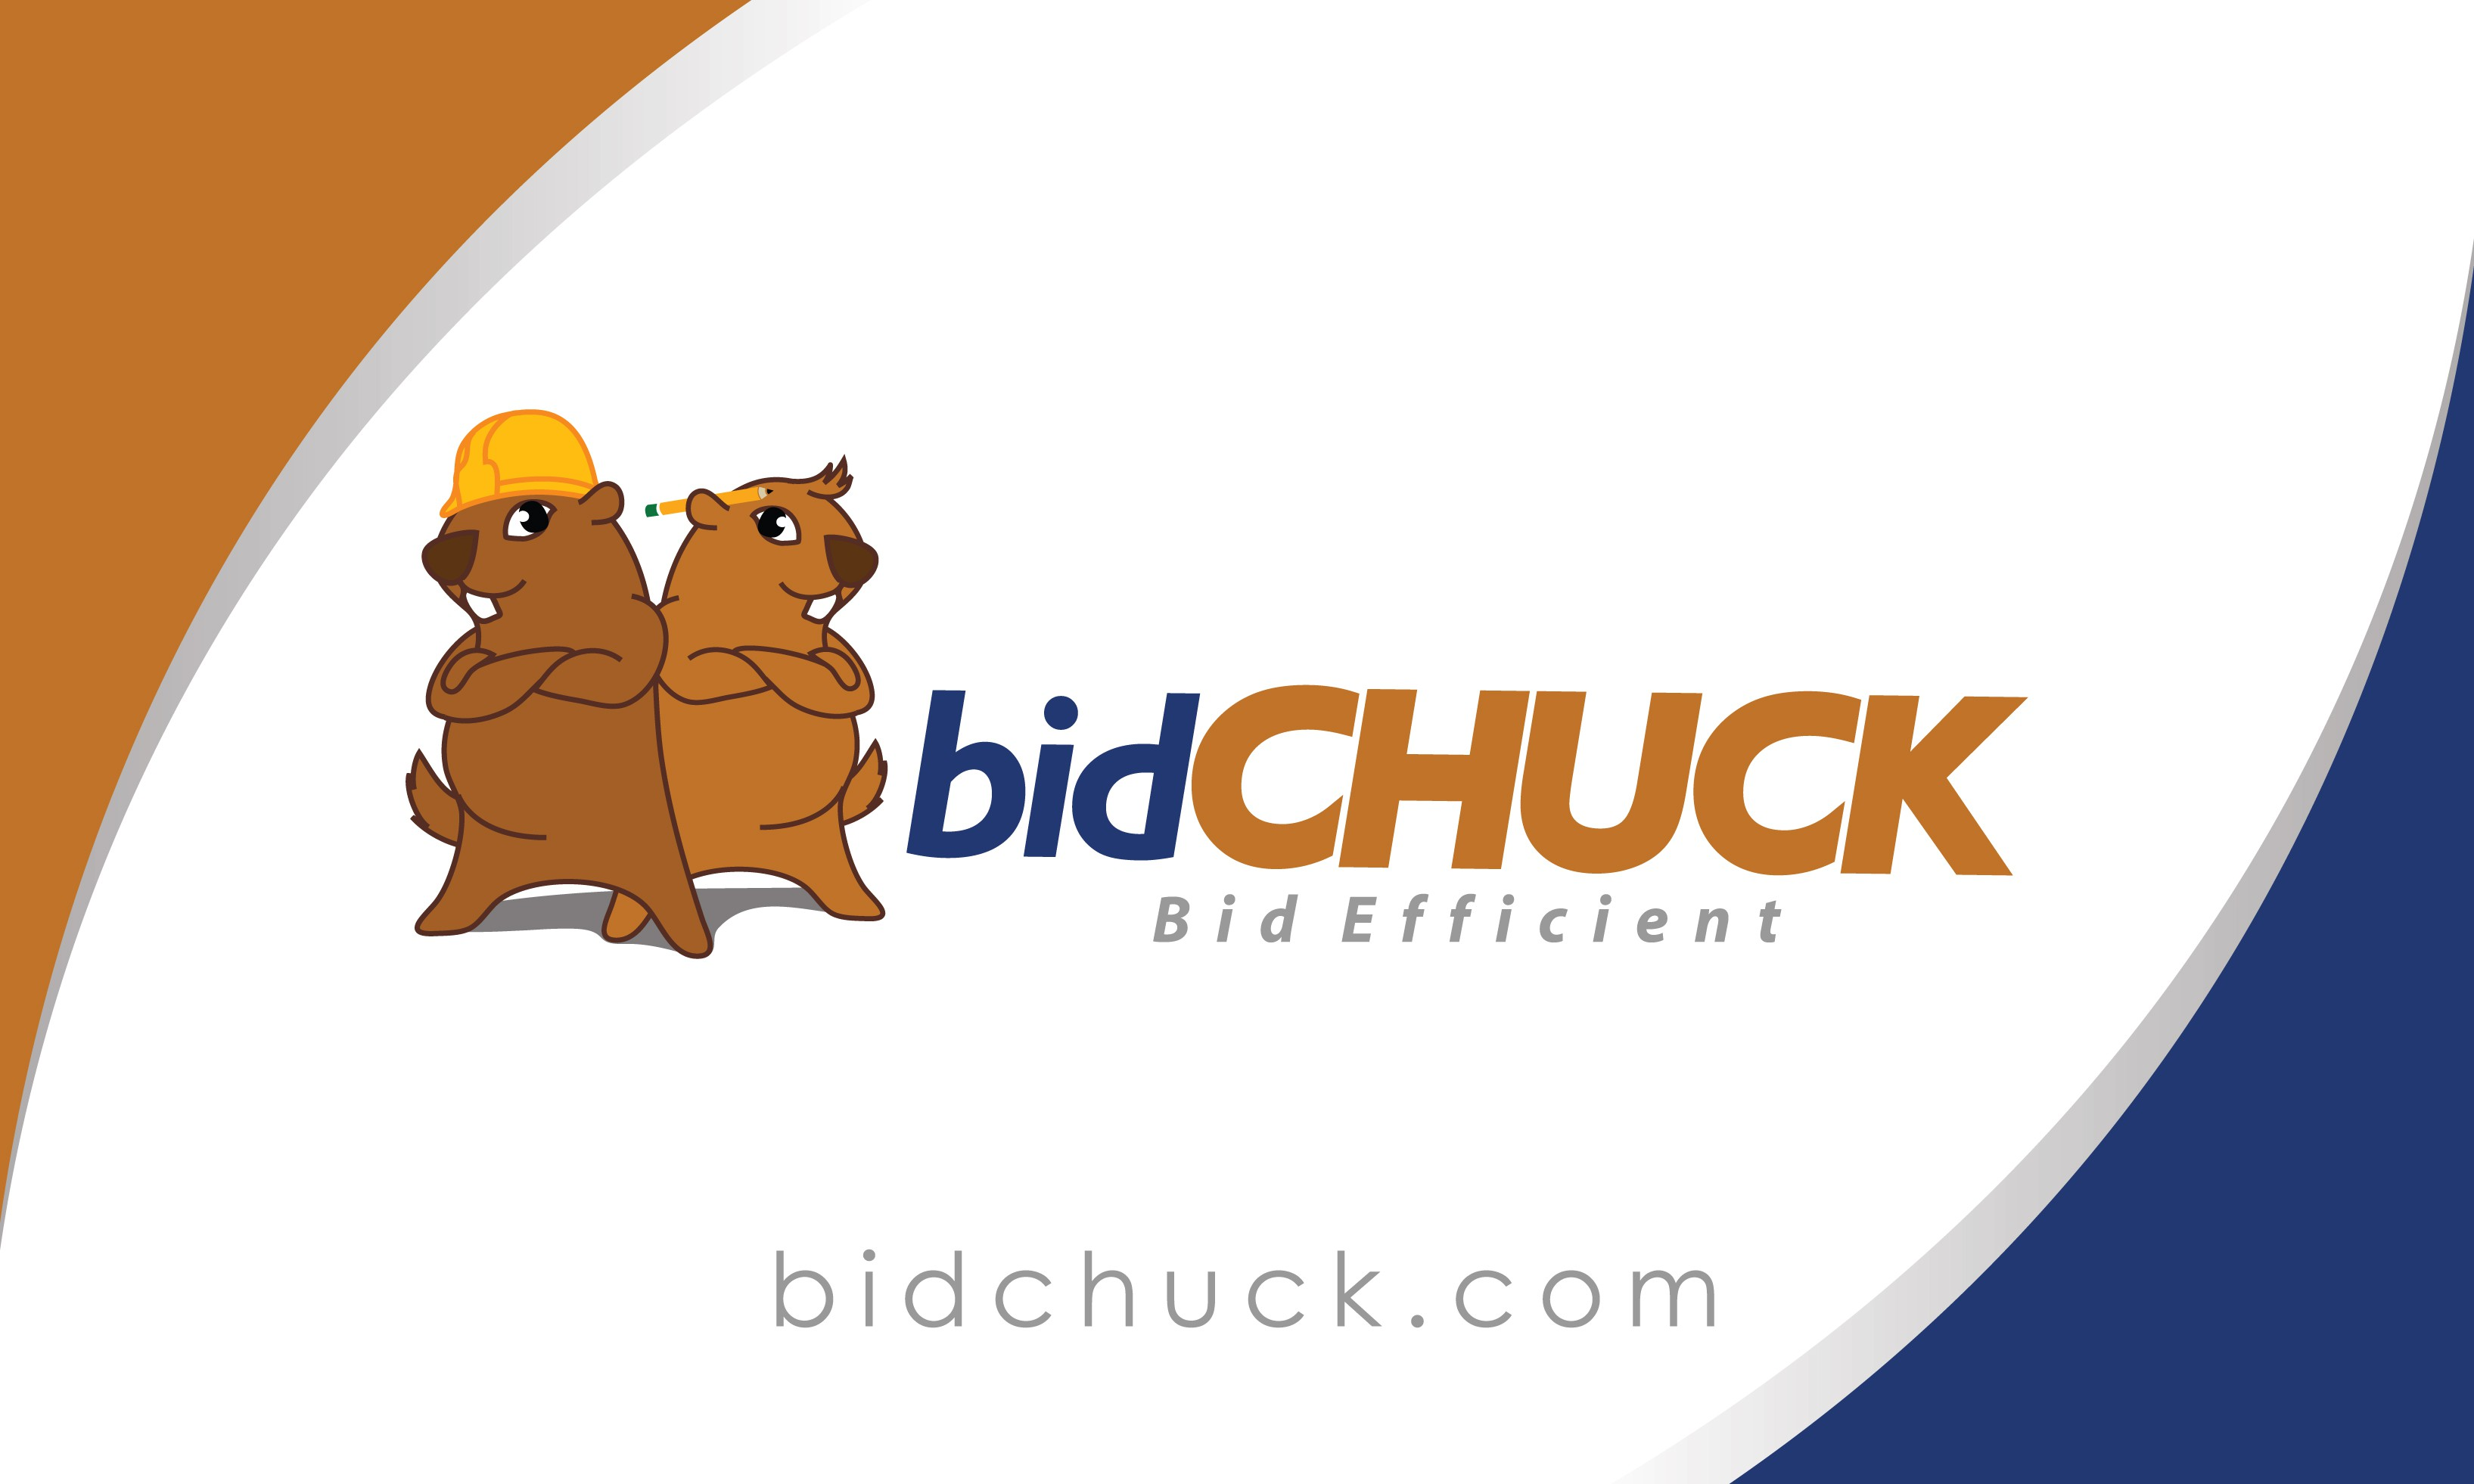 bidCHUCK business cards